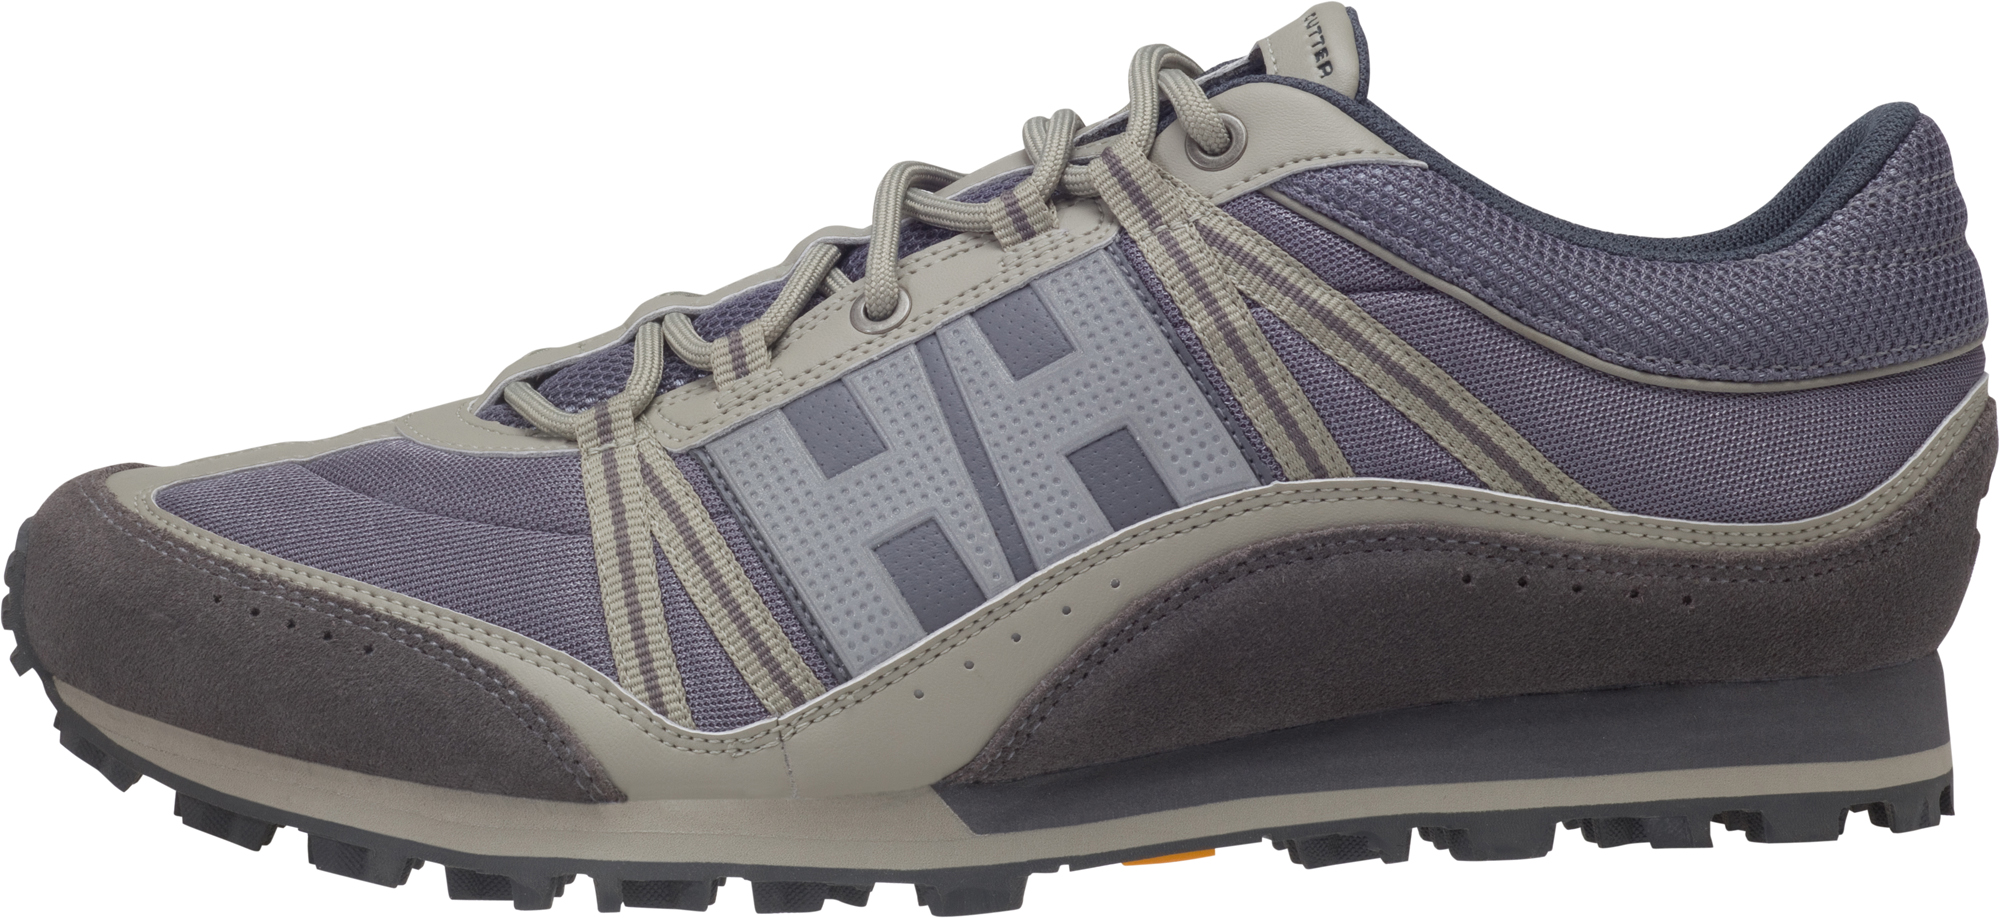 zapatillas helly hansen